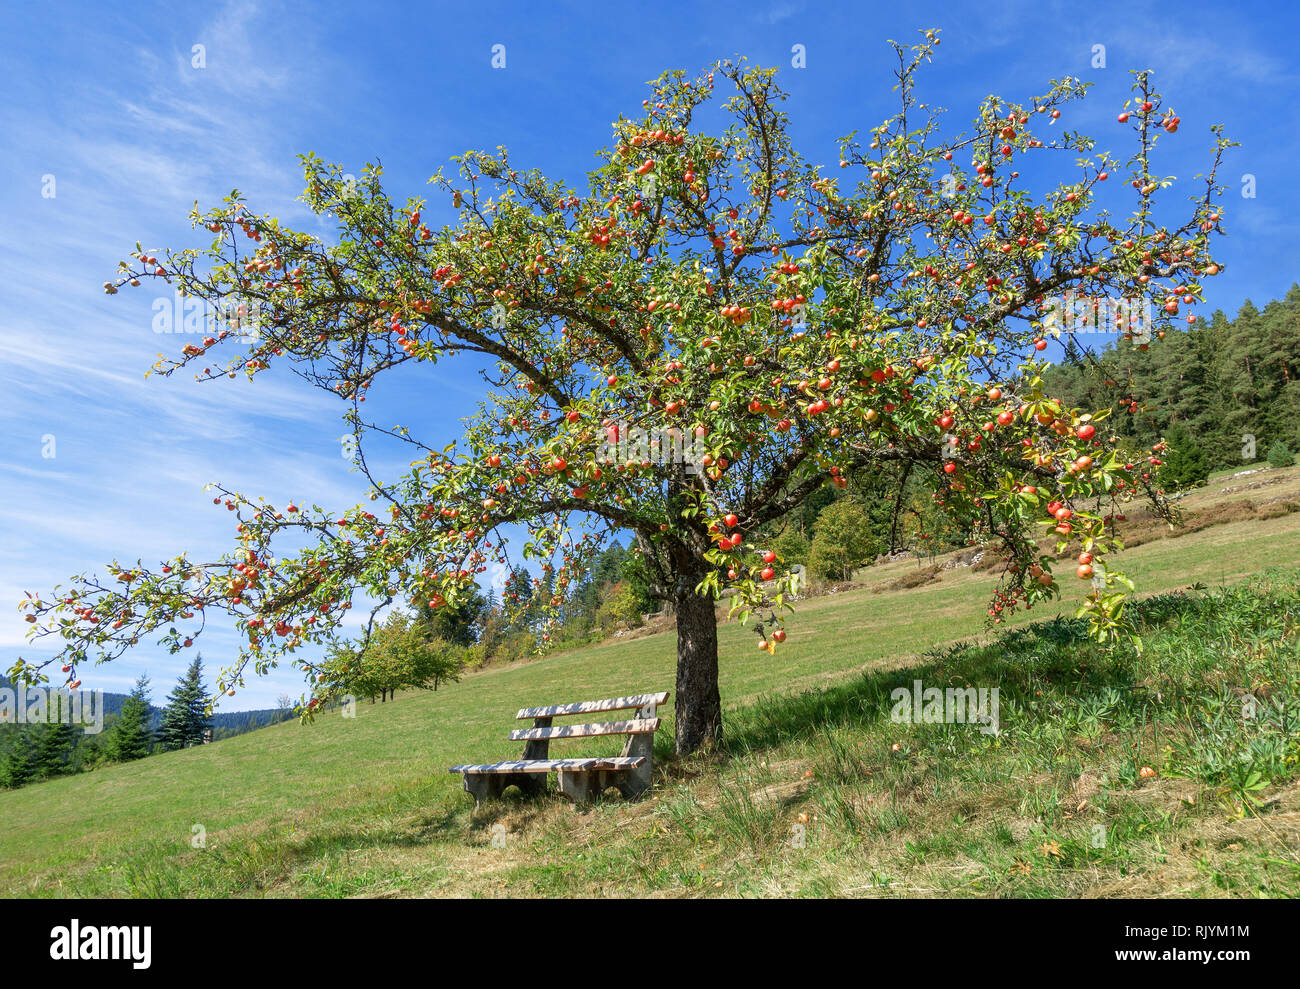 Apple tree with red apples in autumn Stock Photo